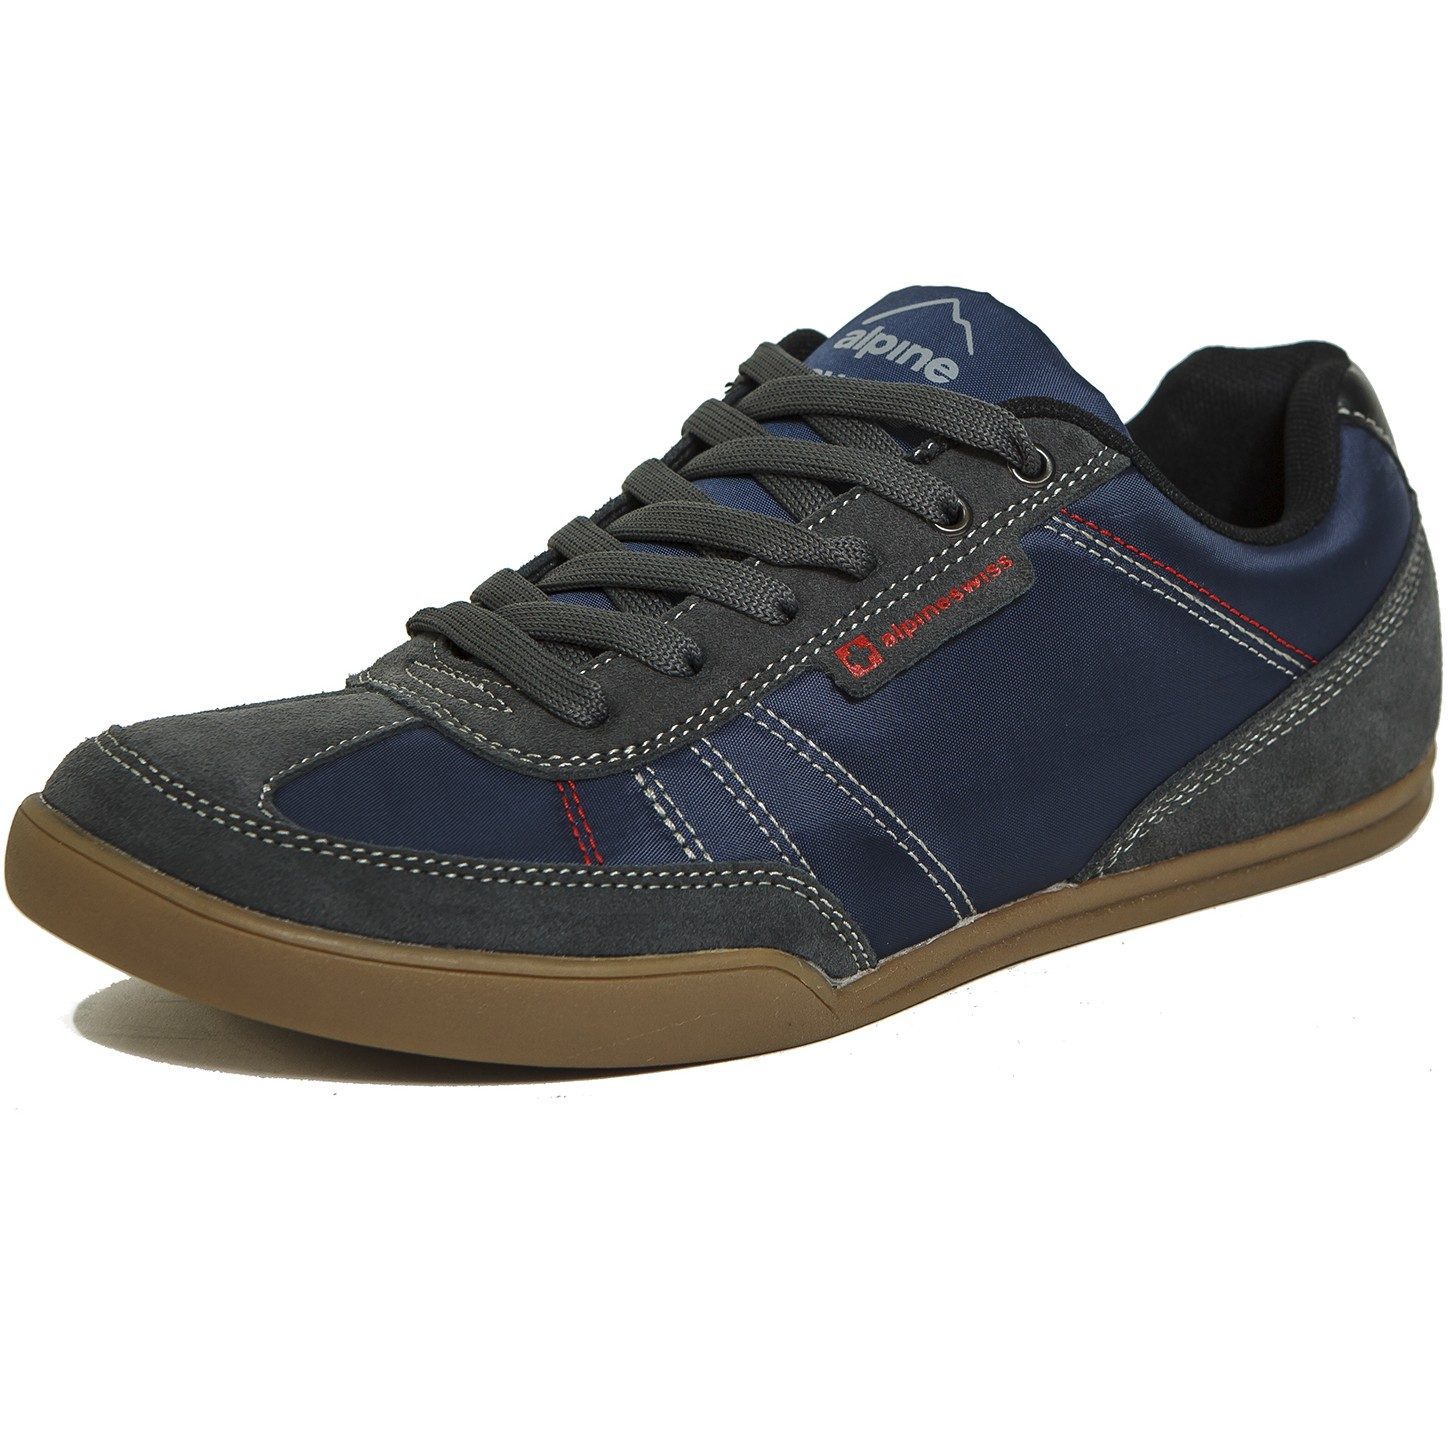 8e6c1d351f Alpine Swiss Marco Mens Casual Shoes Sporty Lace up Jean   Sneaker ...